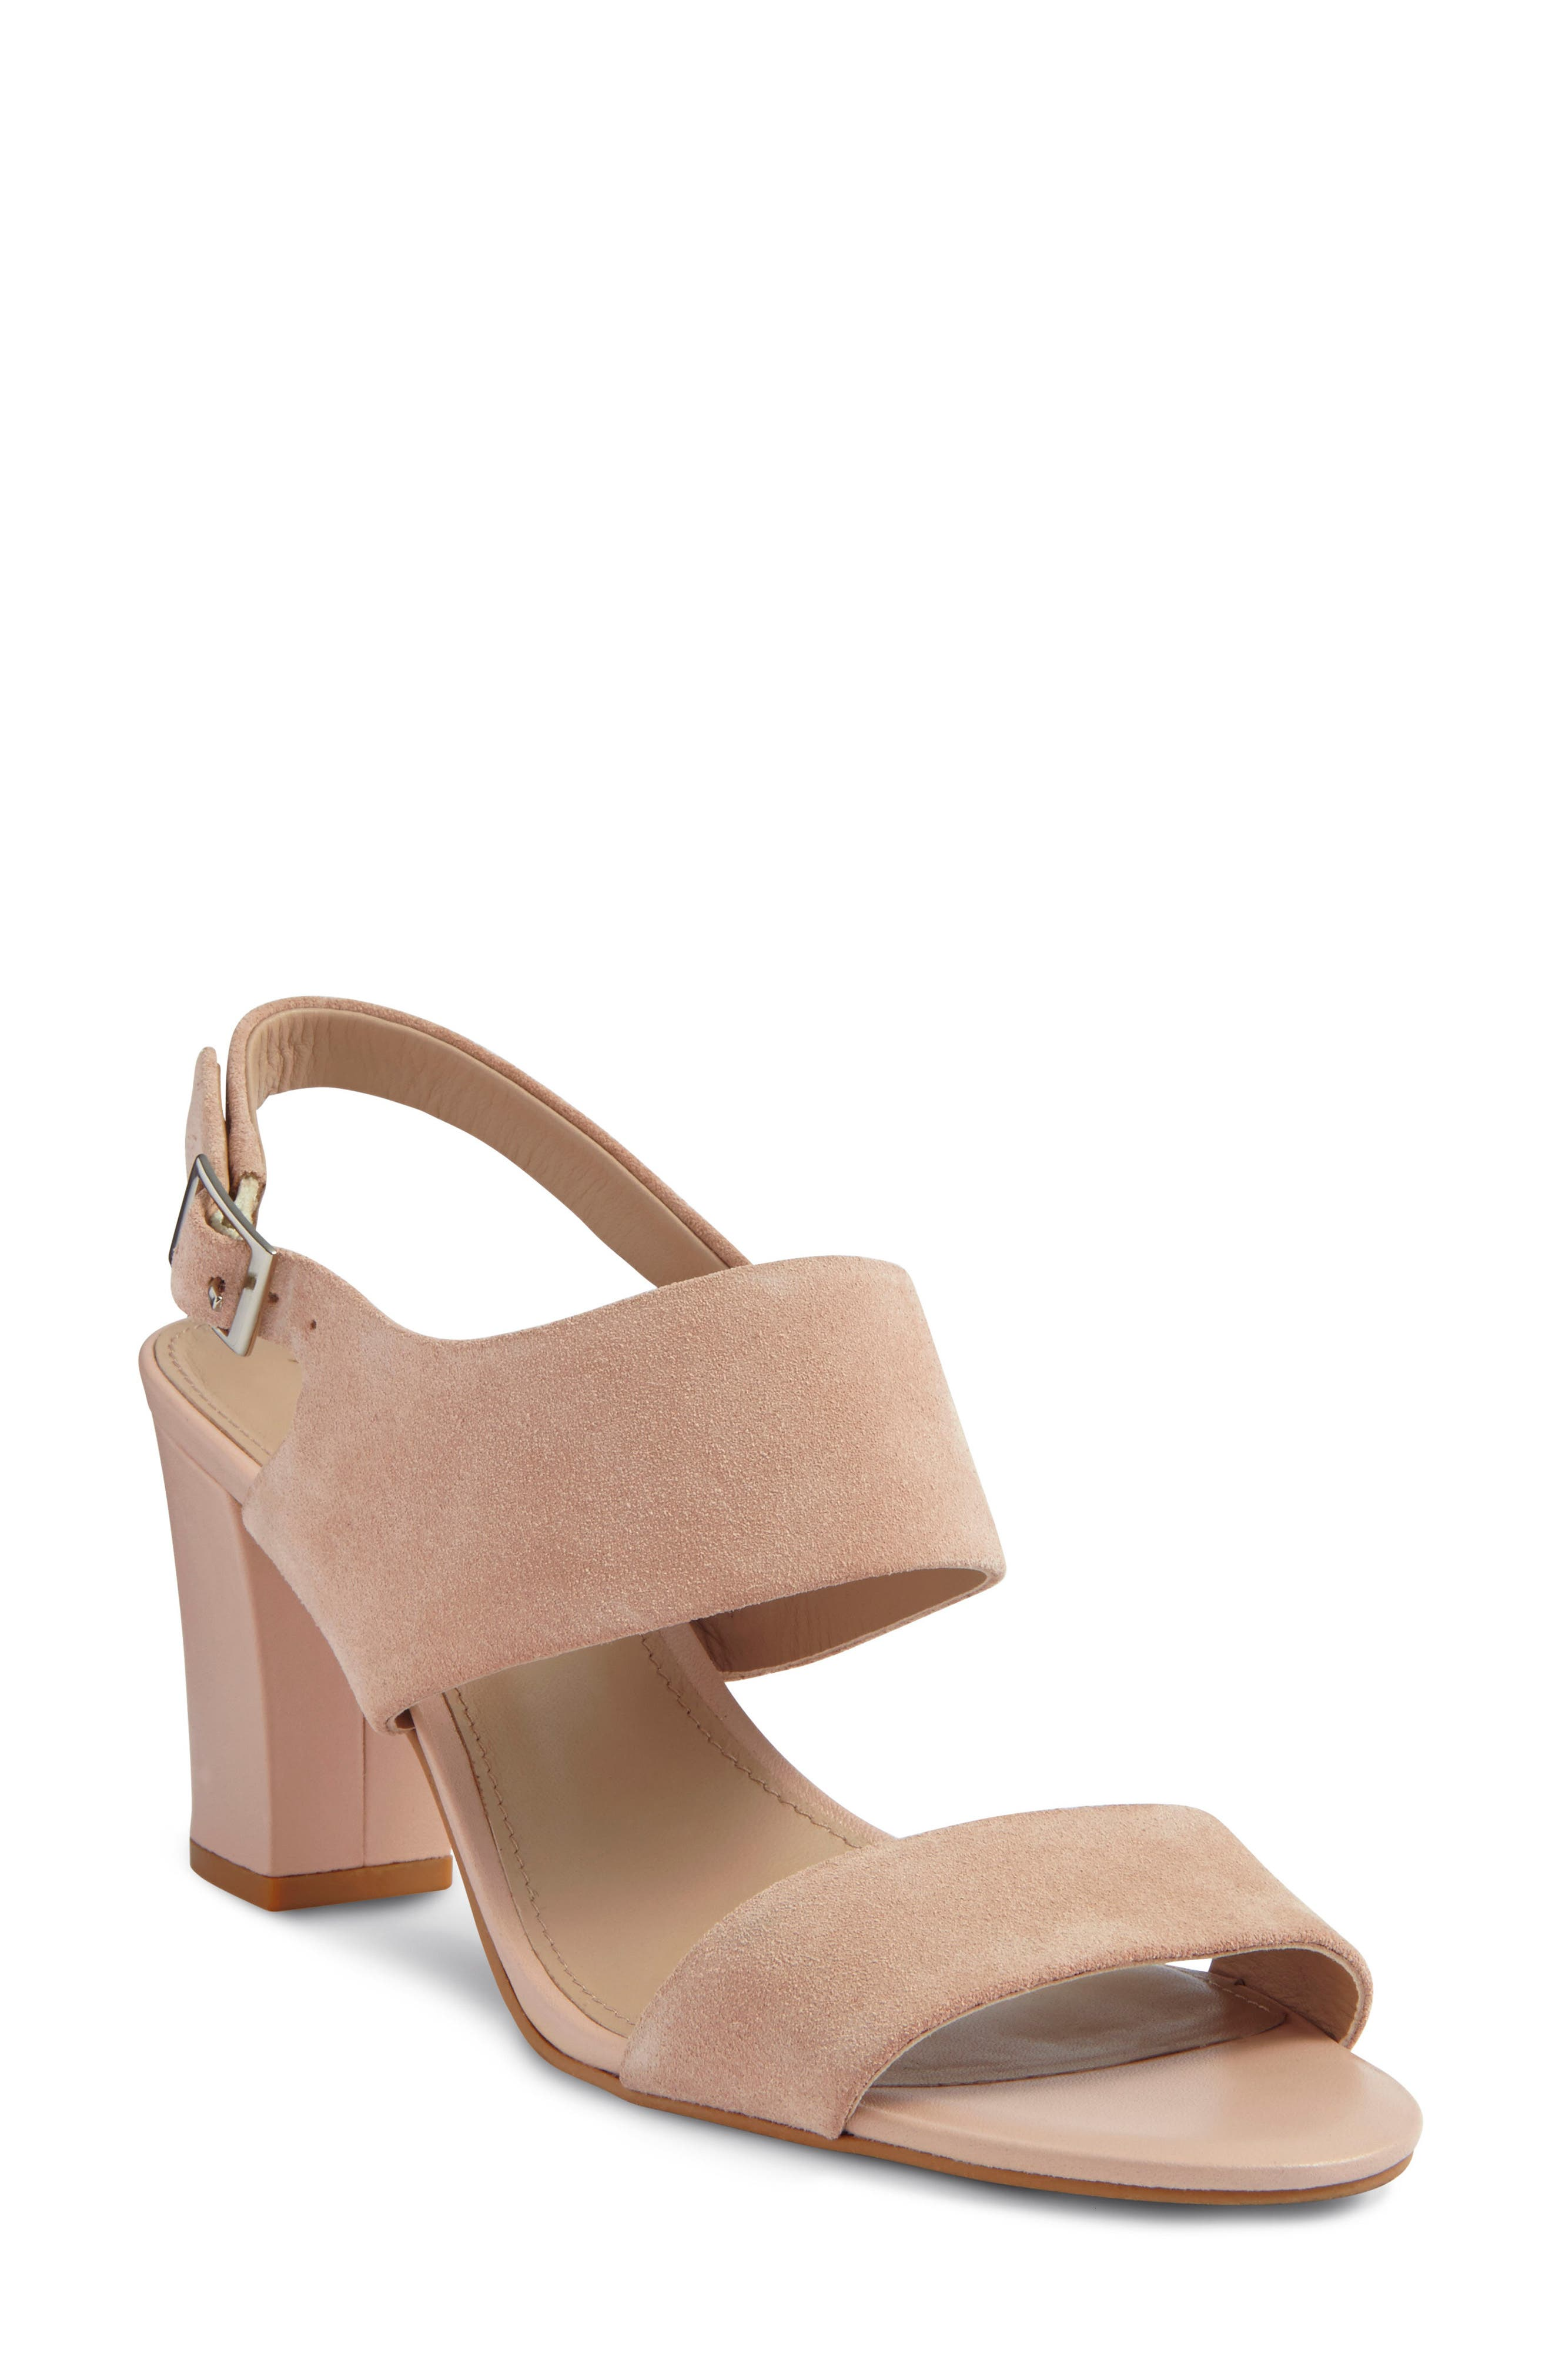 Strappy Sandal,                         Main,                         color, Blush Nude Suede